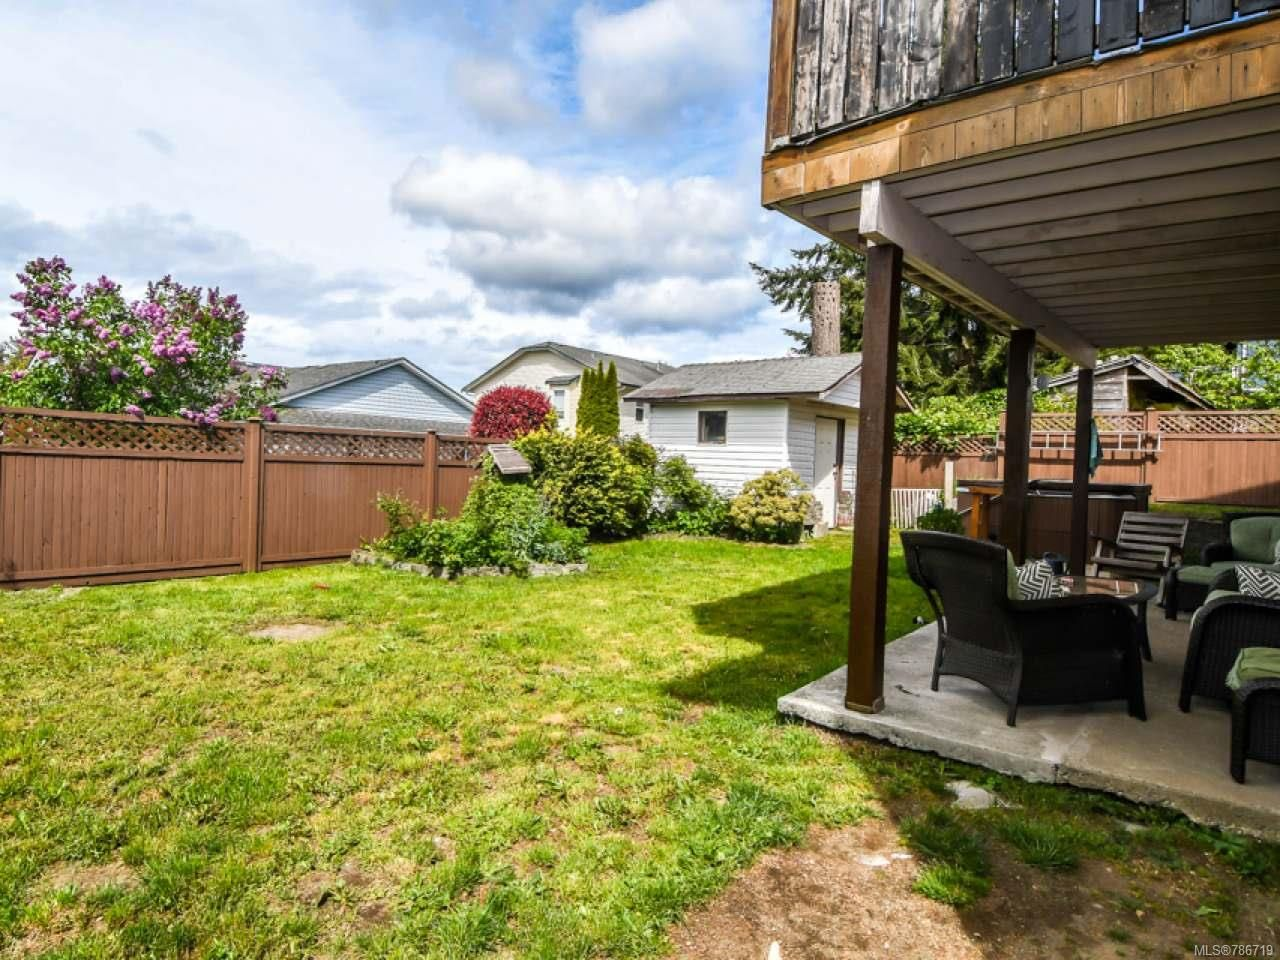 Photo 7: Photos: 1234 Denis Rd in CAMPBELL RIVER: CR Campbell River Central House for sale (Campbell River)  : MLS®# 786719